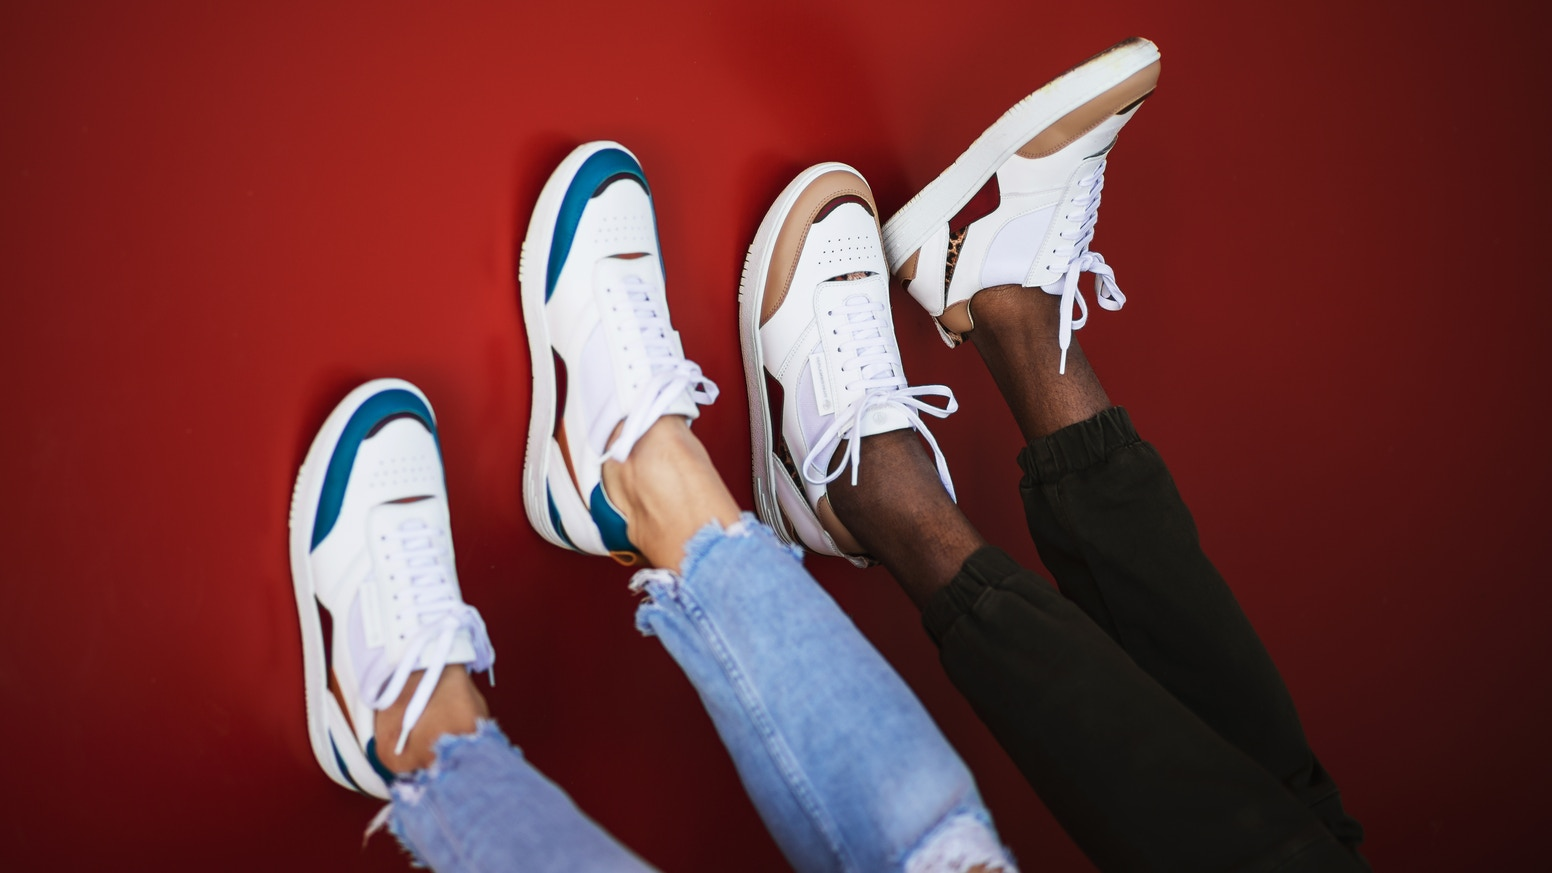 Slow-fashion sneakers made hand by hand in Portugal. We plant a tree for each pair of sneakers you buy.